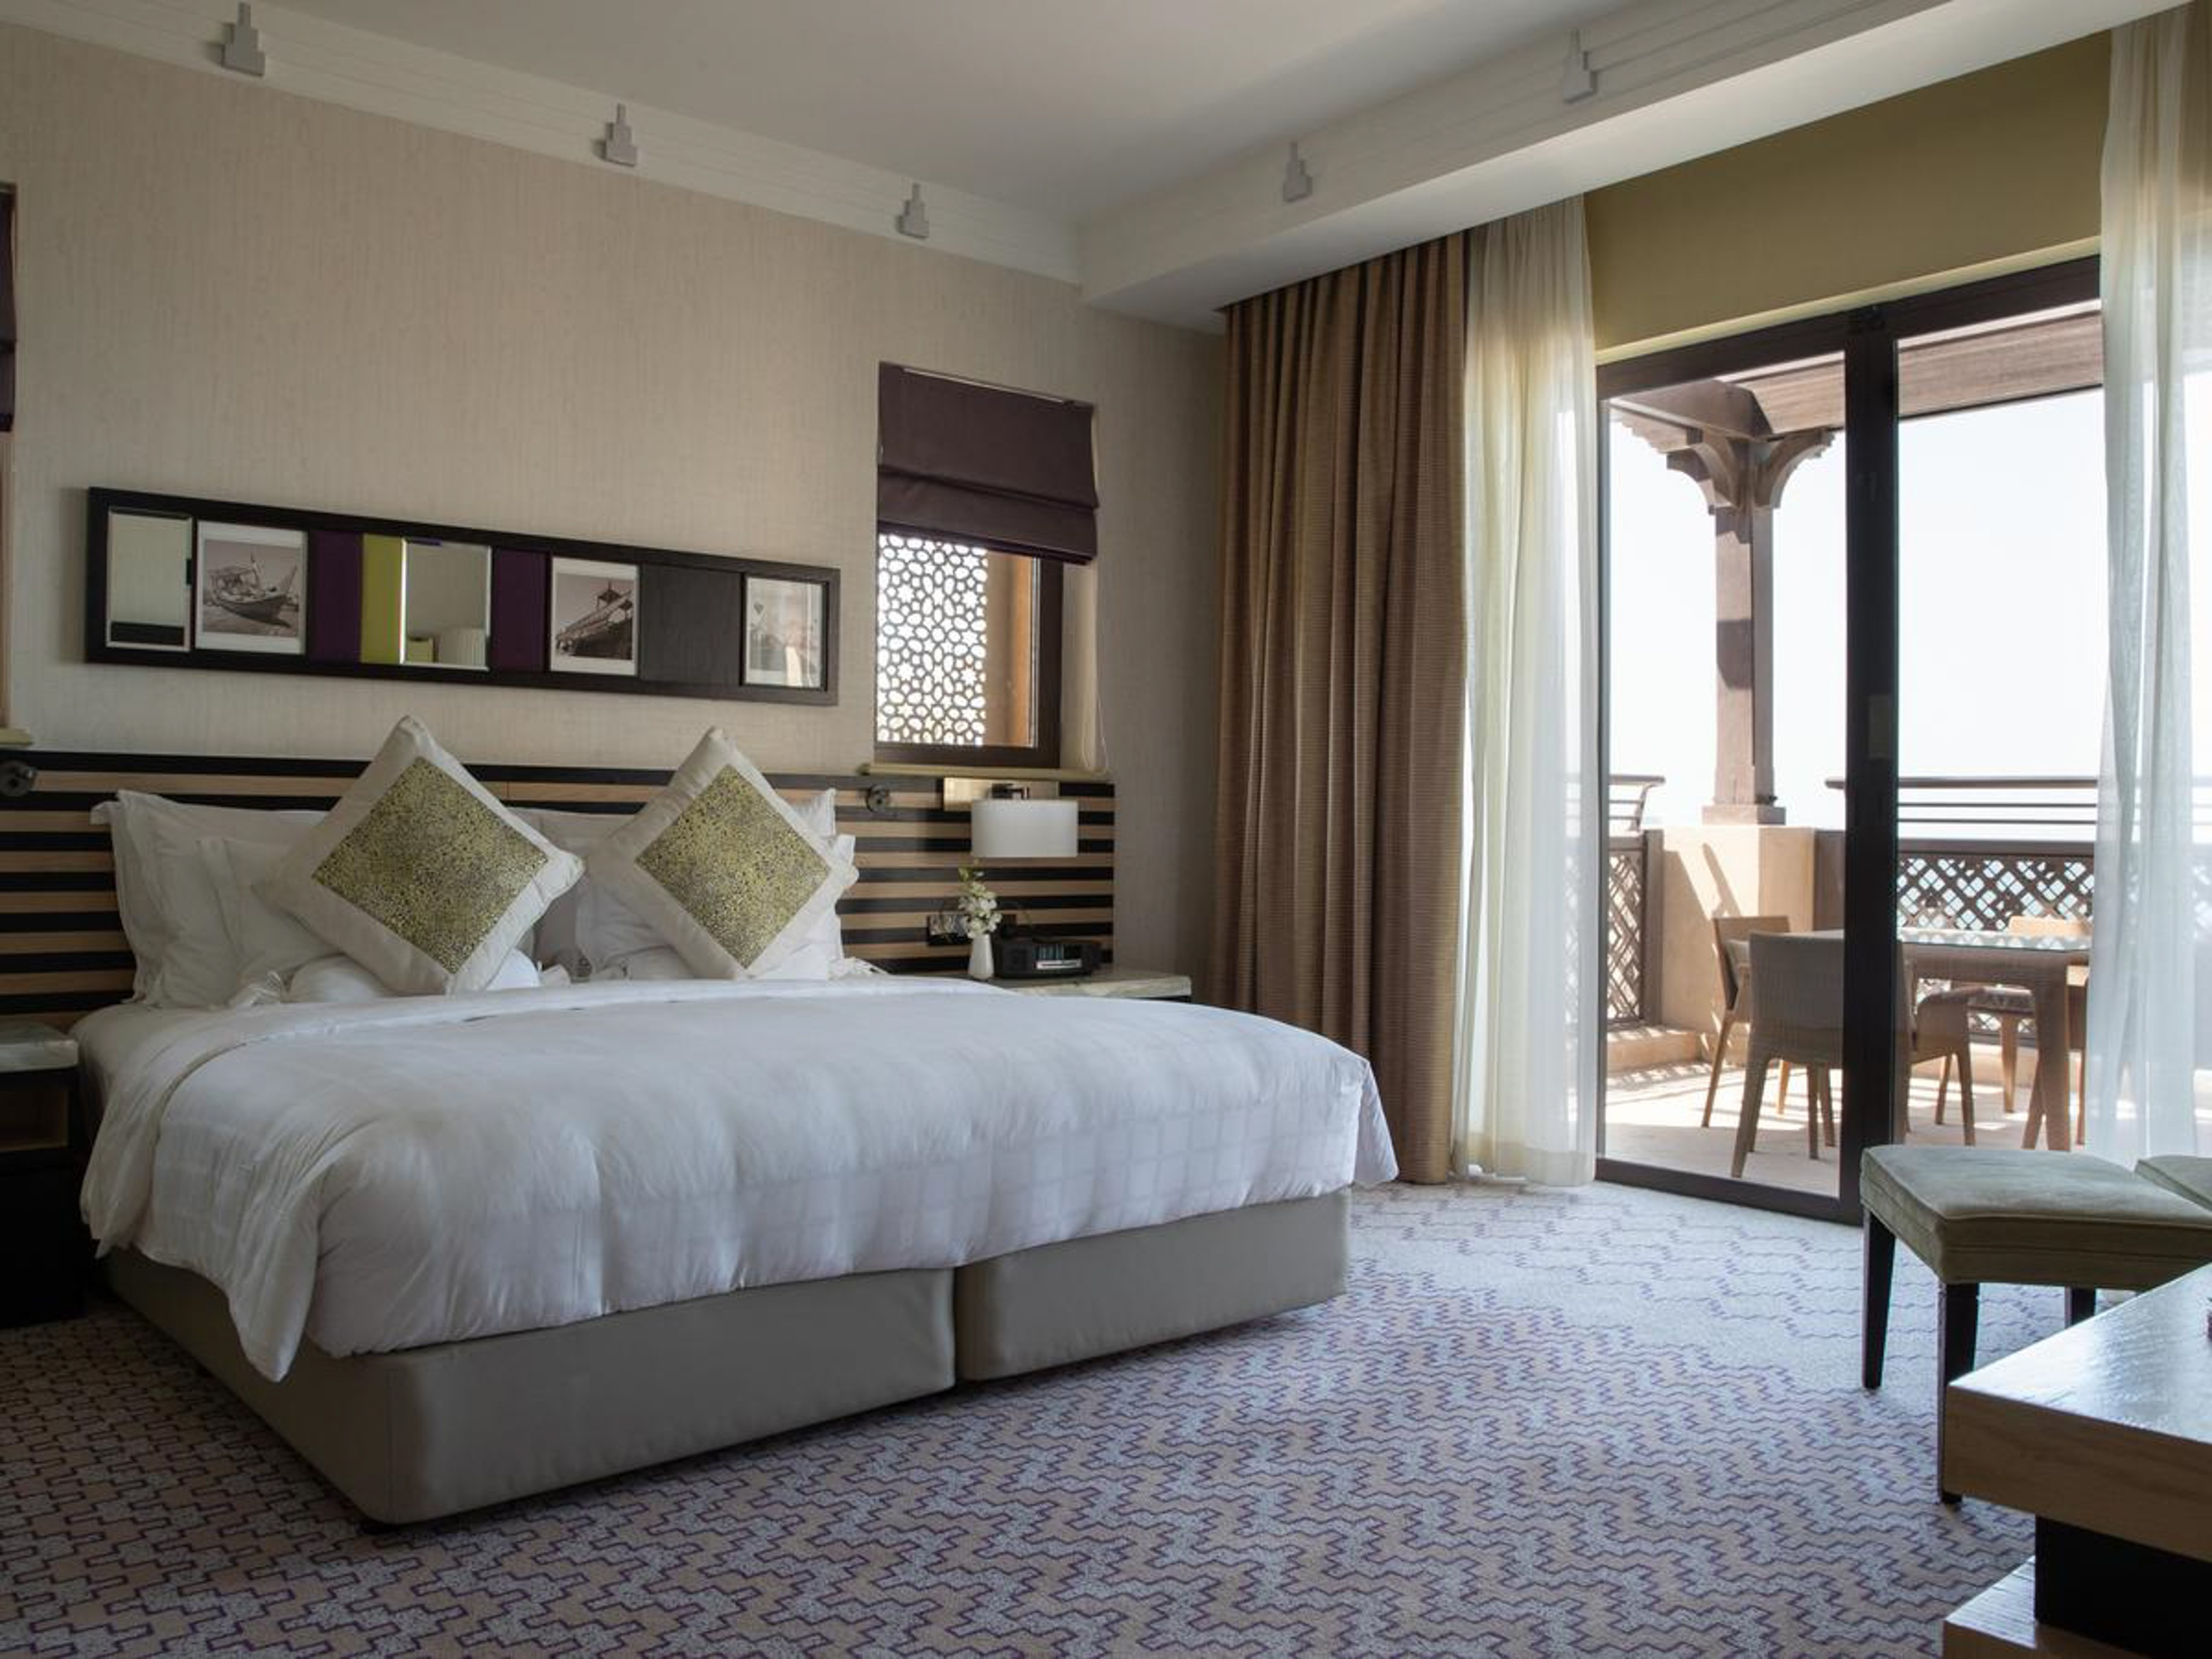 Mina A'Salam sits in the Venetian-style waterways with impressive views of the Arabian Gulf